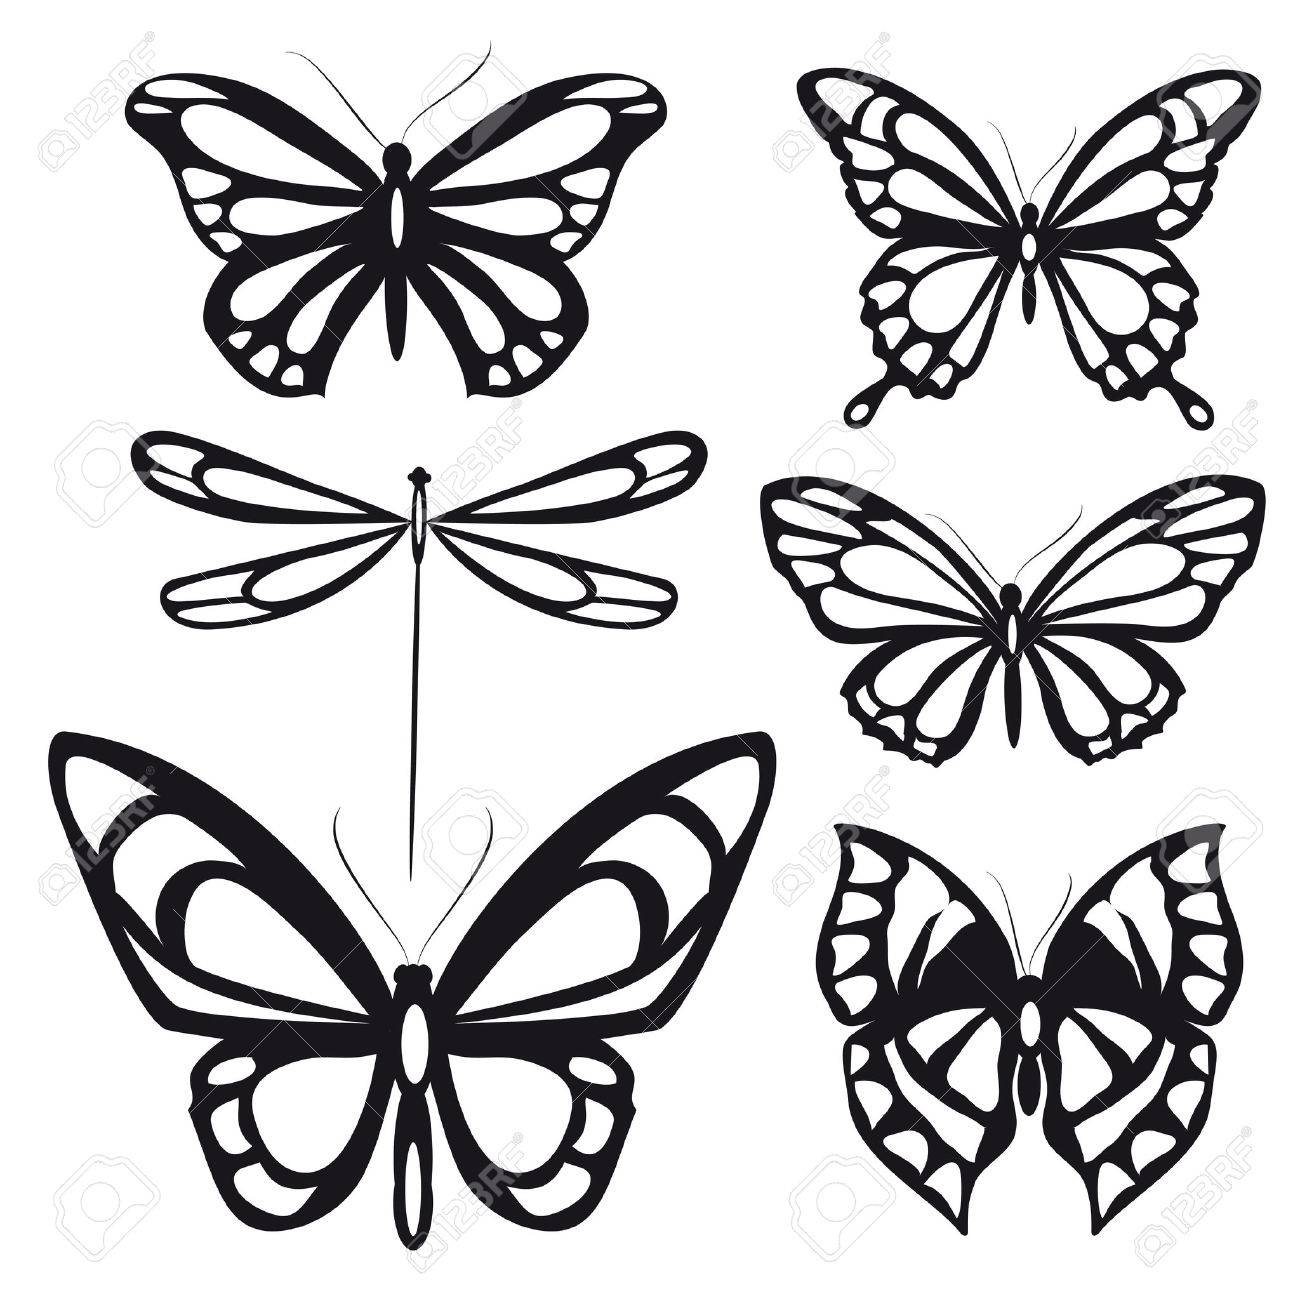 1300x1300 Butterflies Design Royalty Free Cliparts, Vectors, And Stock